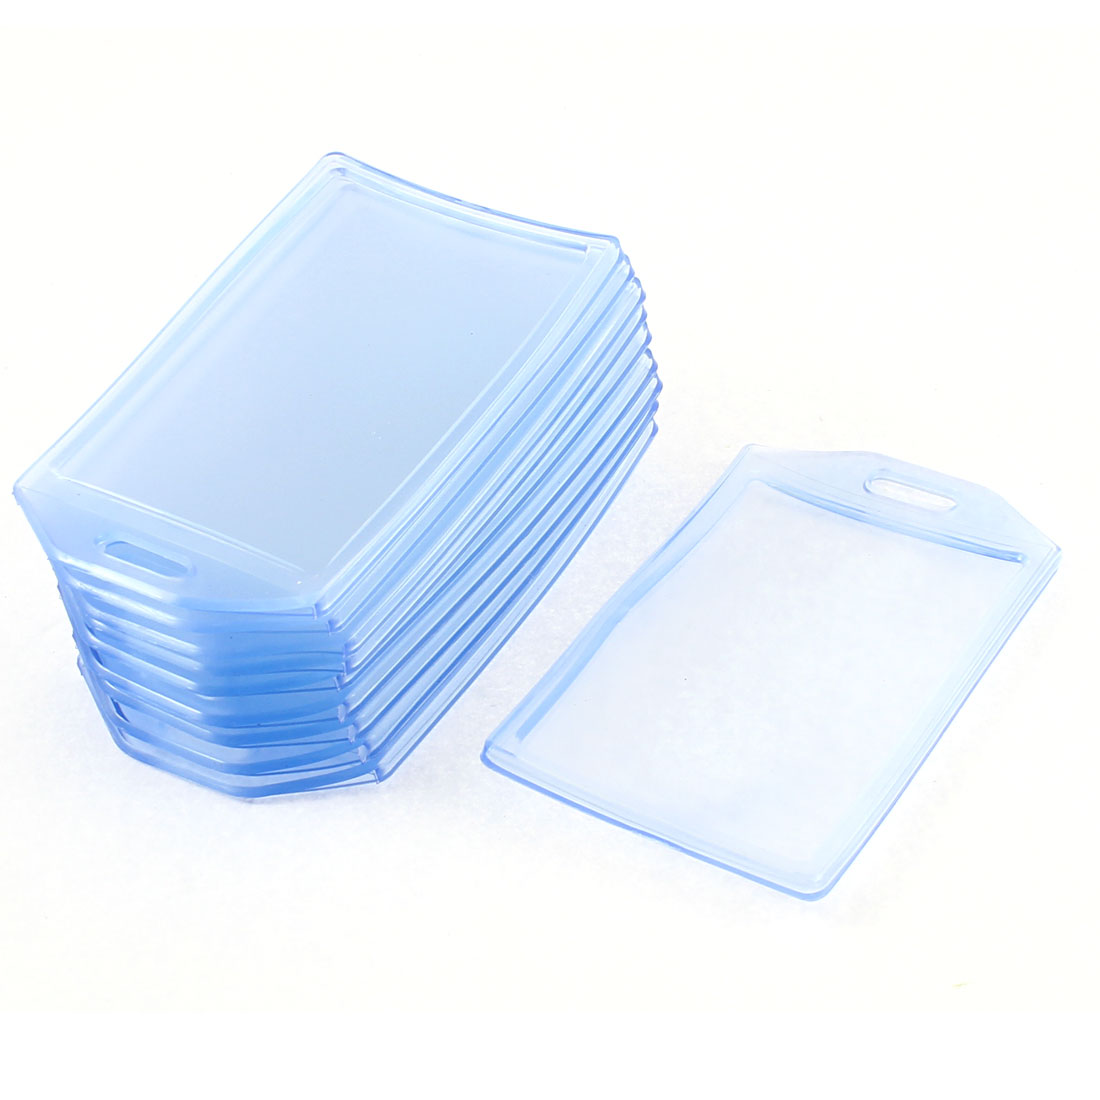 Vertical Type Badge ID Card Holder Clear Blue 10Pcs